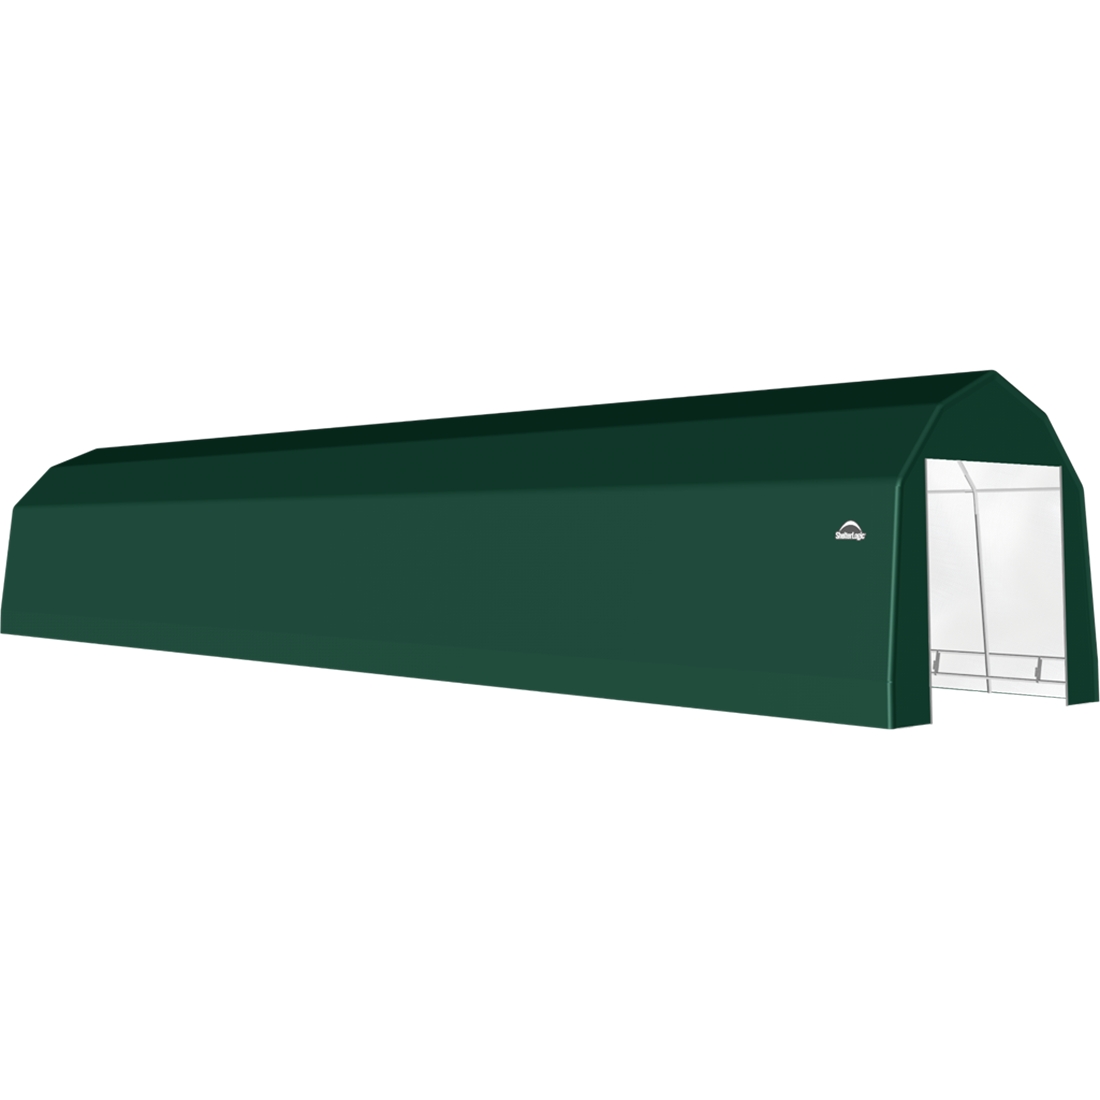 SP Barn 12X68X11 Green 14 oz PE Shelter